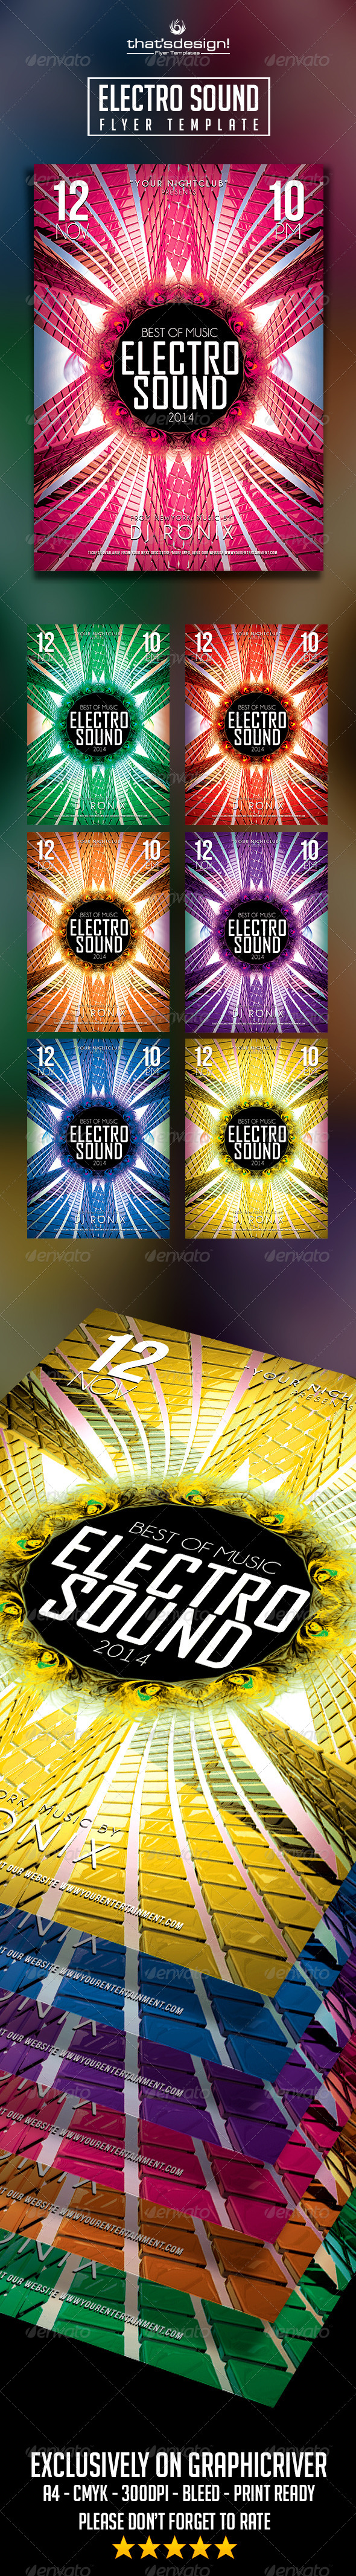 Electro Sound Flyer V2 - Print Templates